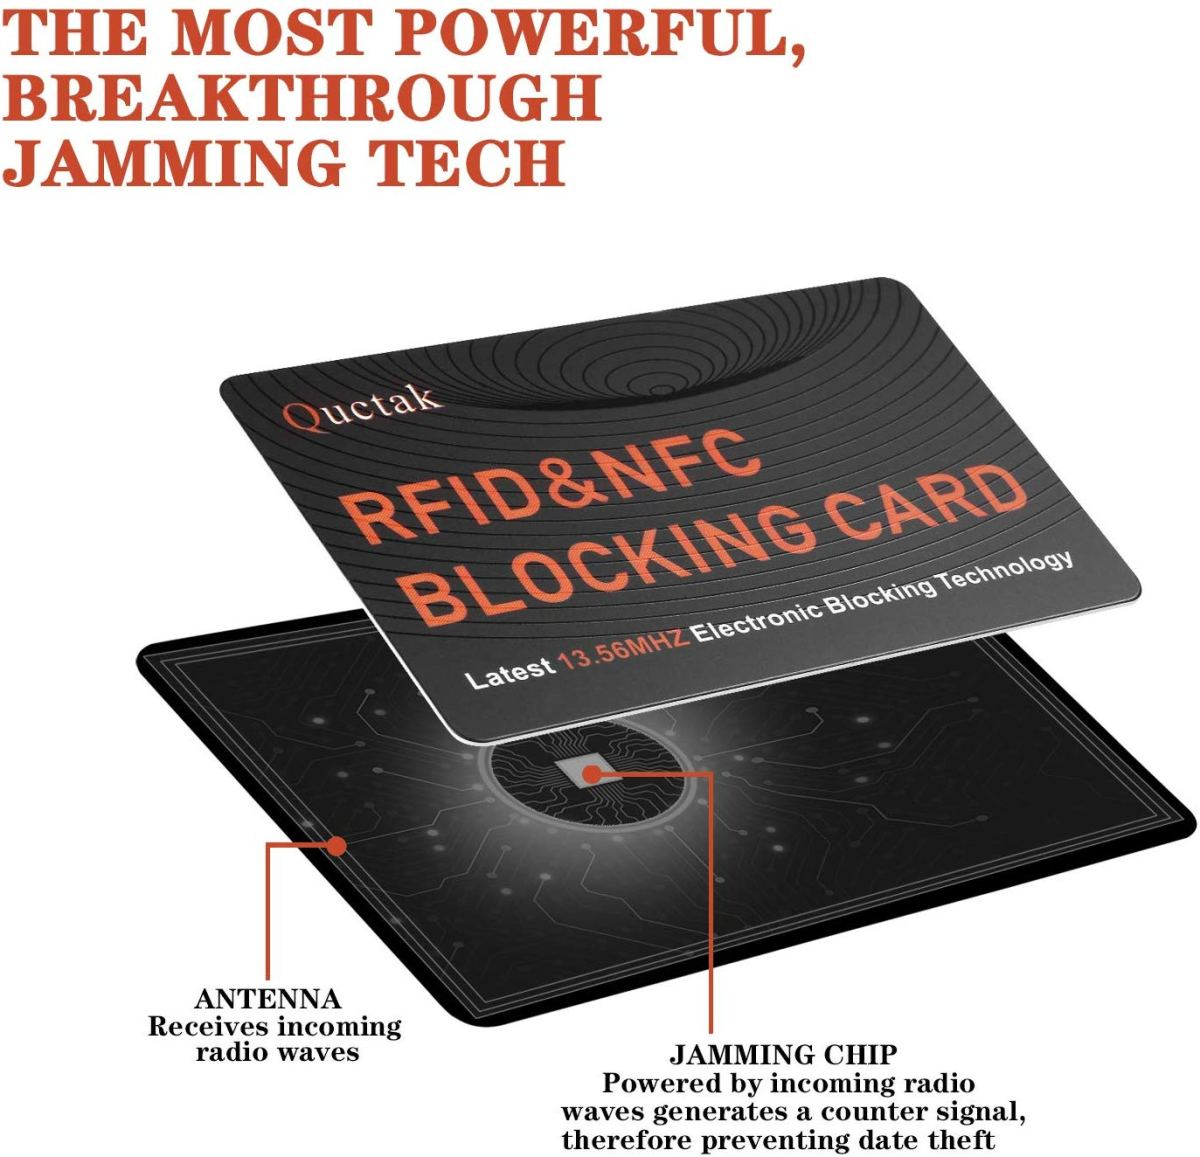 RFID Blocking Card for protecting your cards